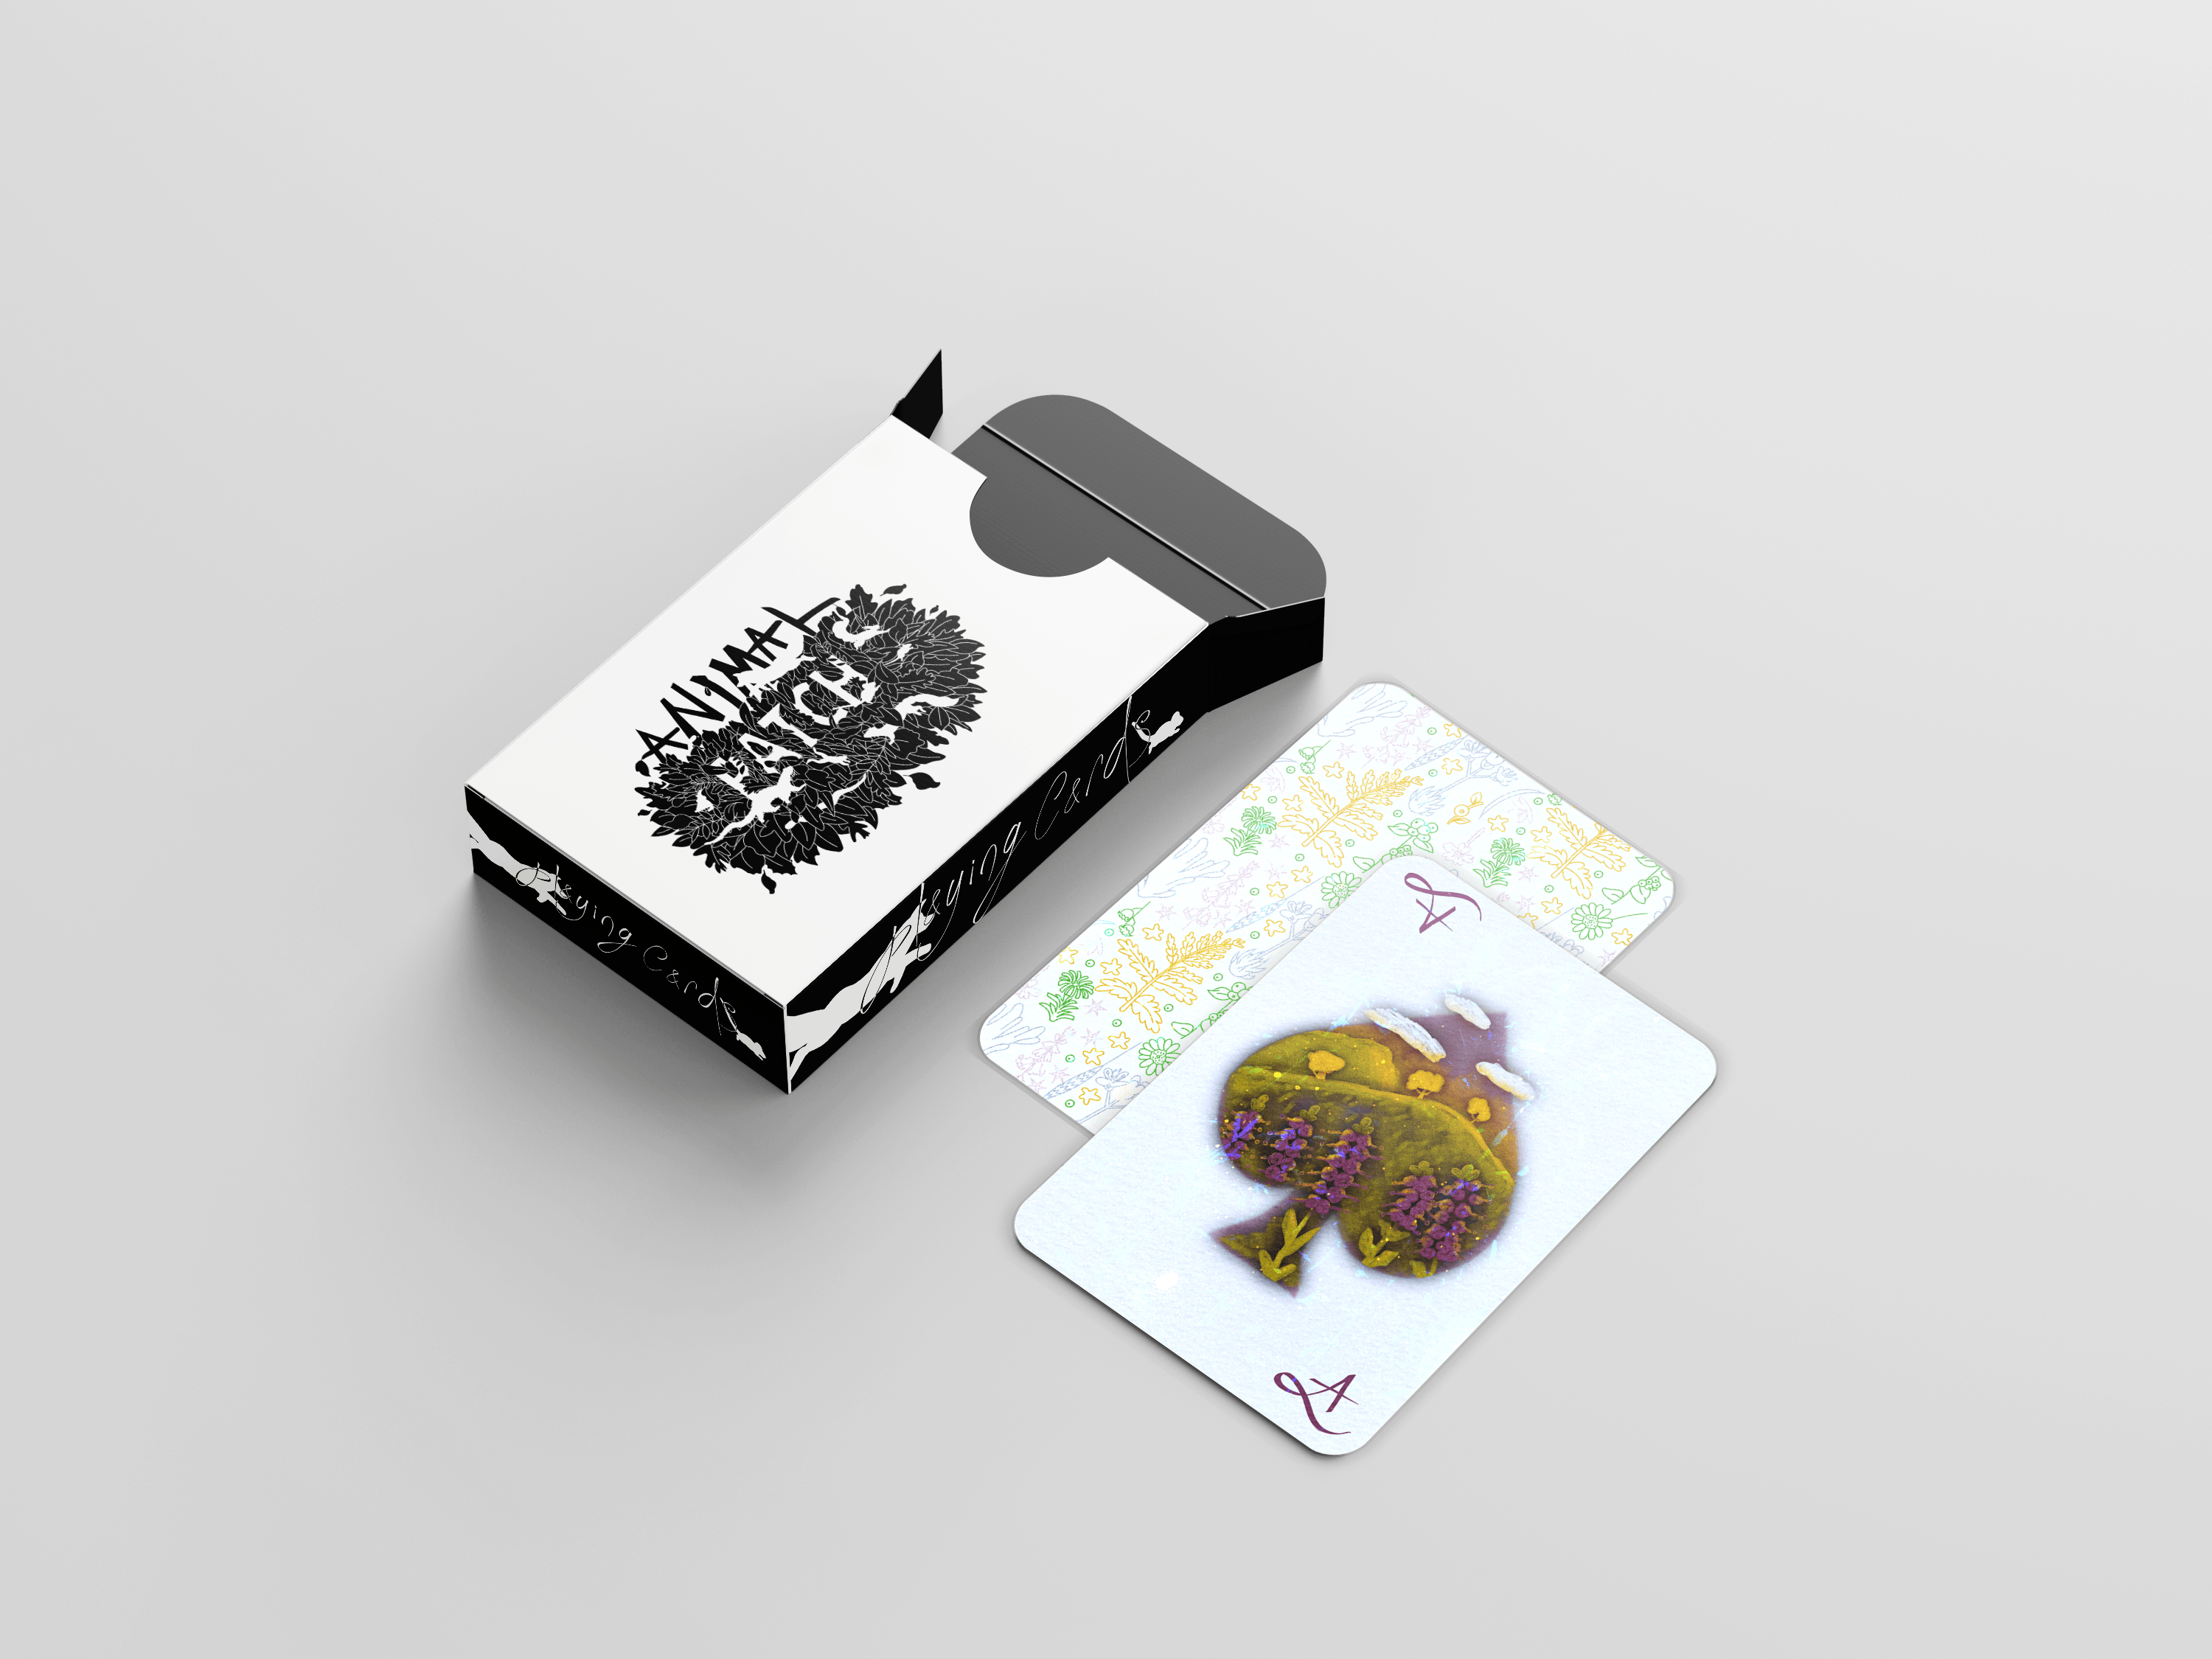 Illustrated Playing Cards and Packaging design.